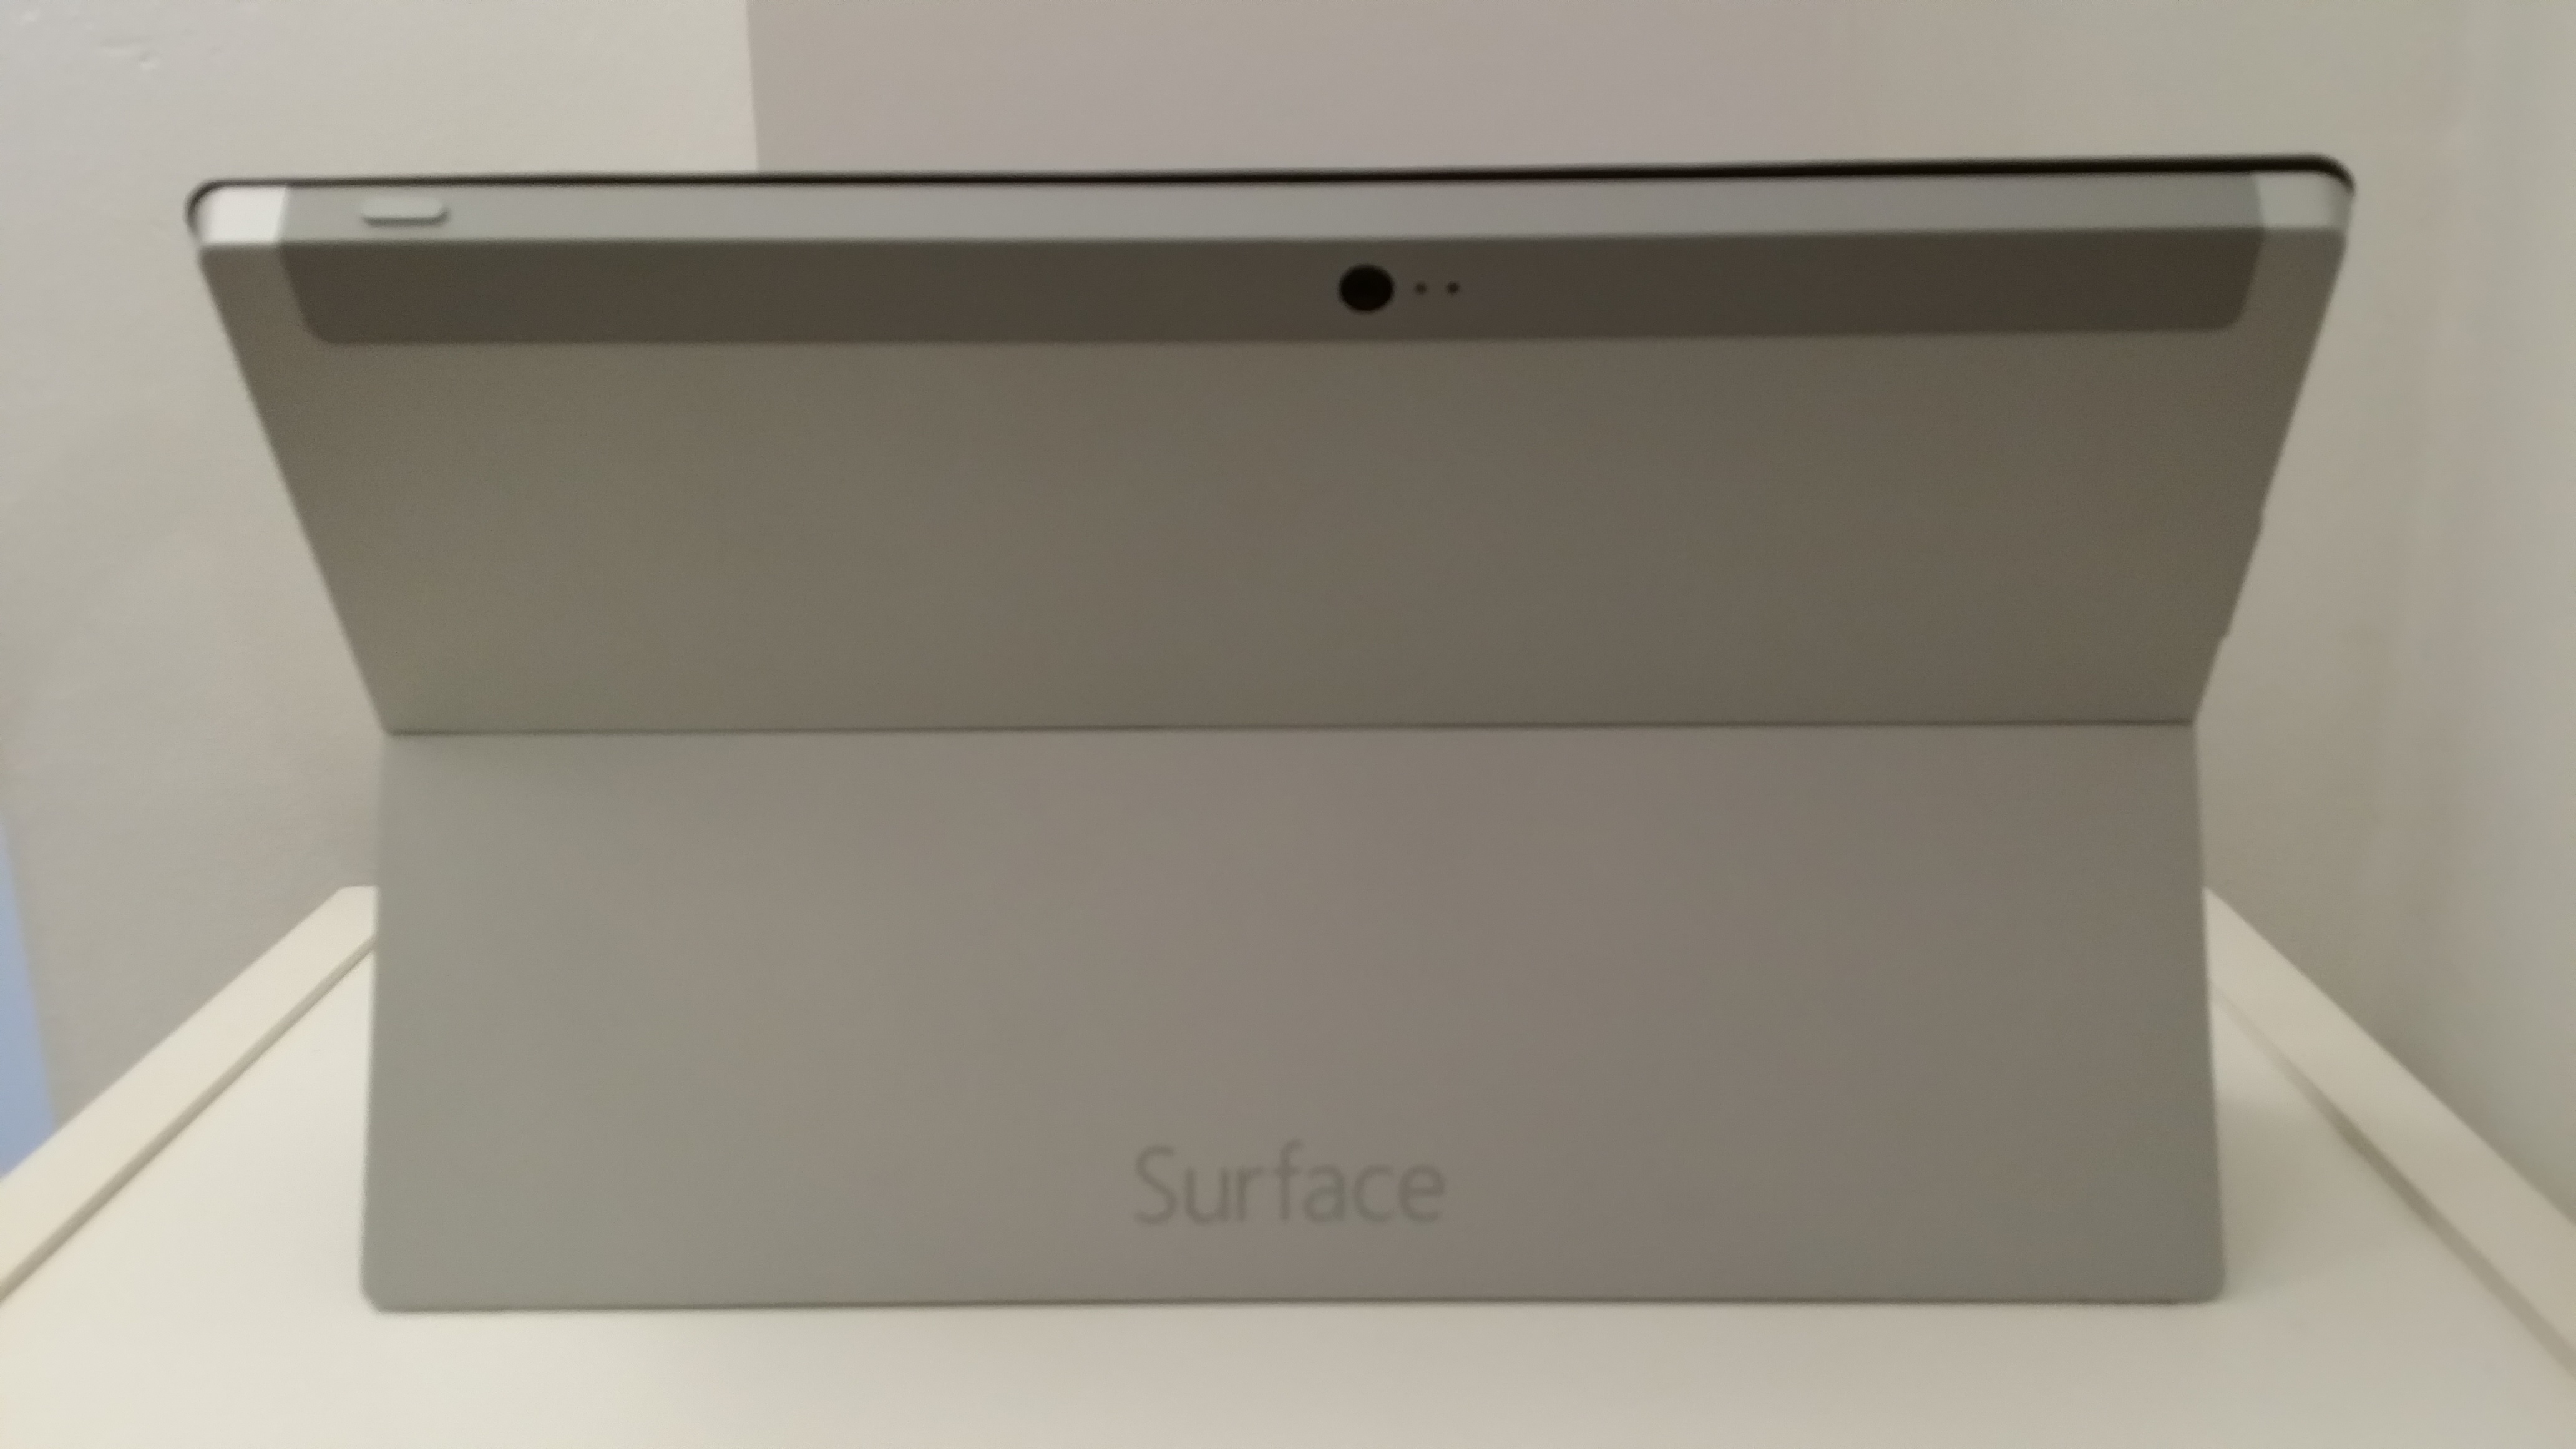 20131017 153155 Microsoft Surface 2 review: The tablet that needs to convince the world it deserves to exist